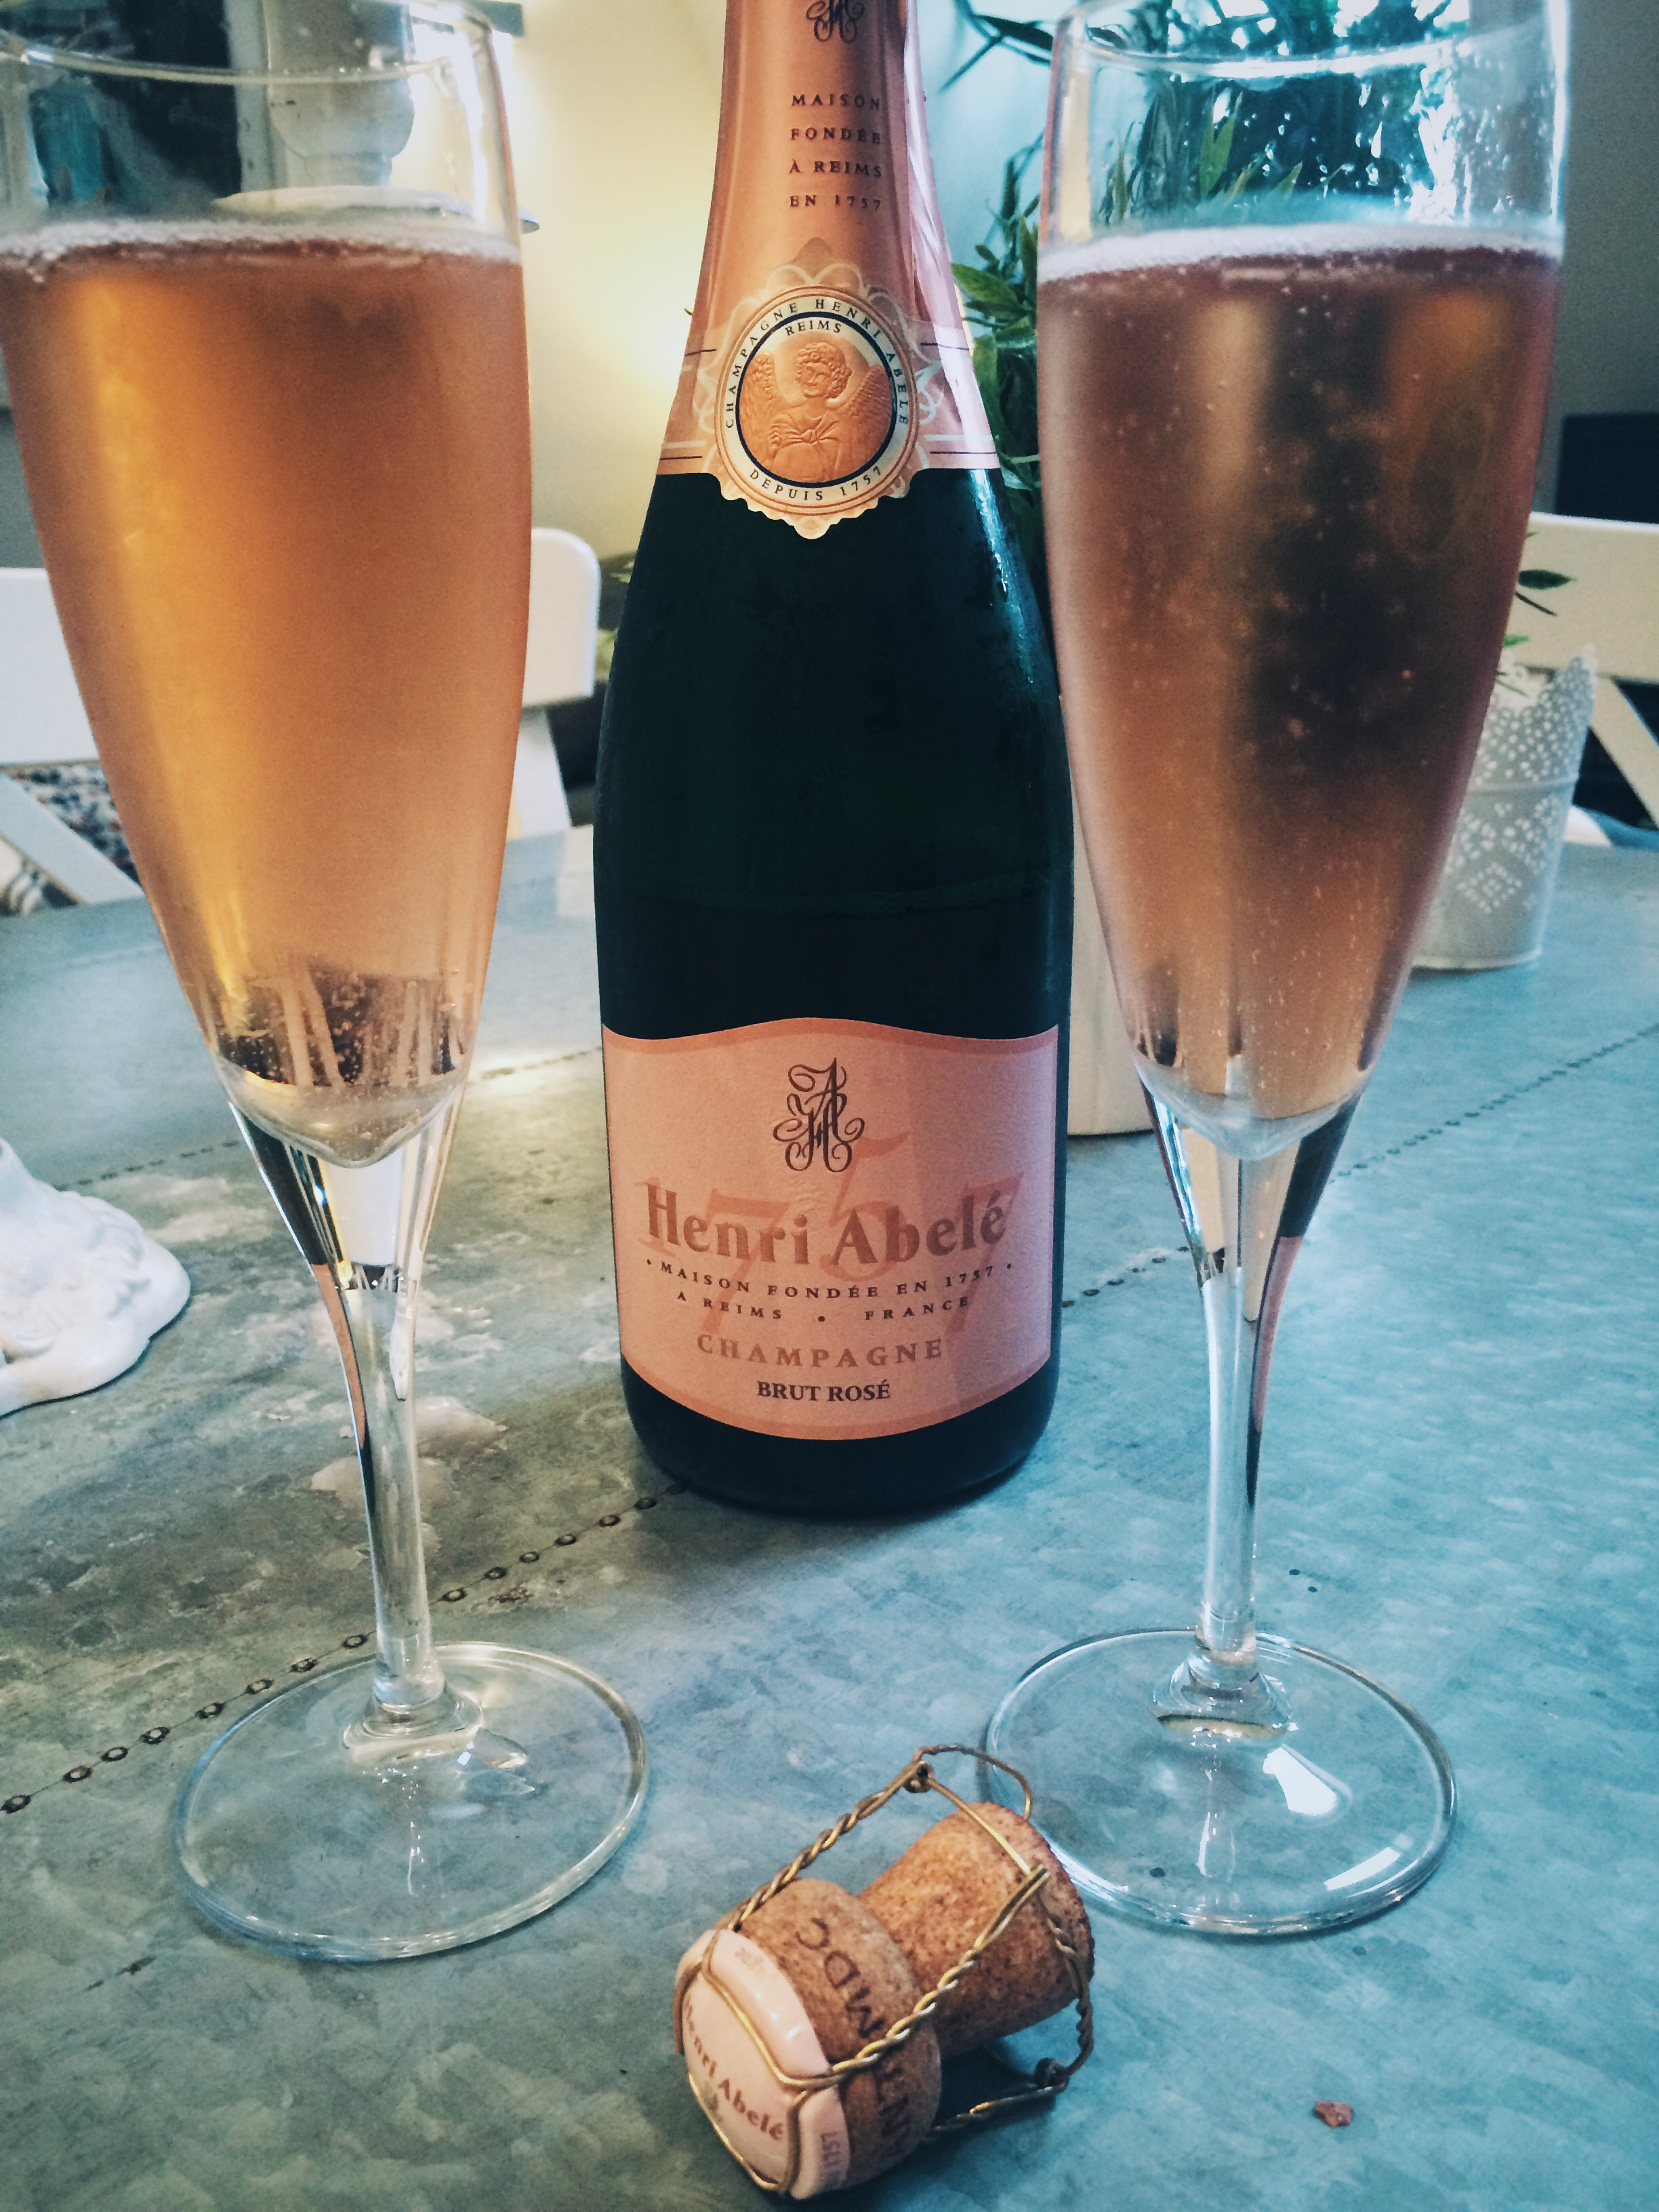 Christmas Day Bubbles:  Henri Abelé Brut Rosé , a new favorite.